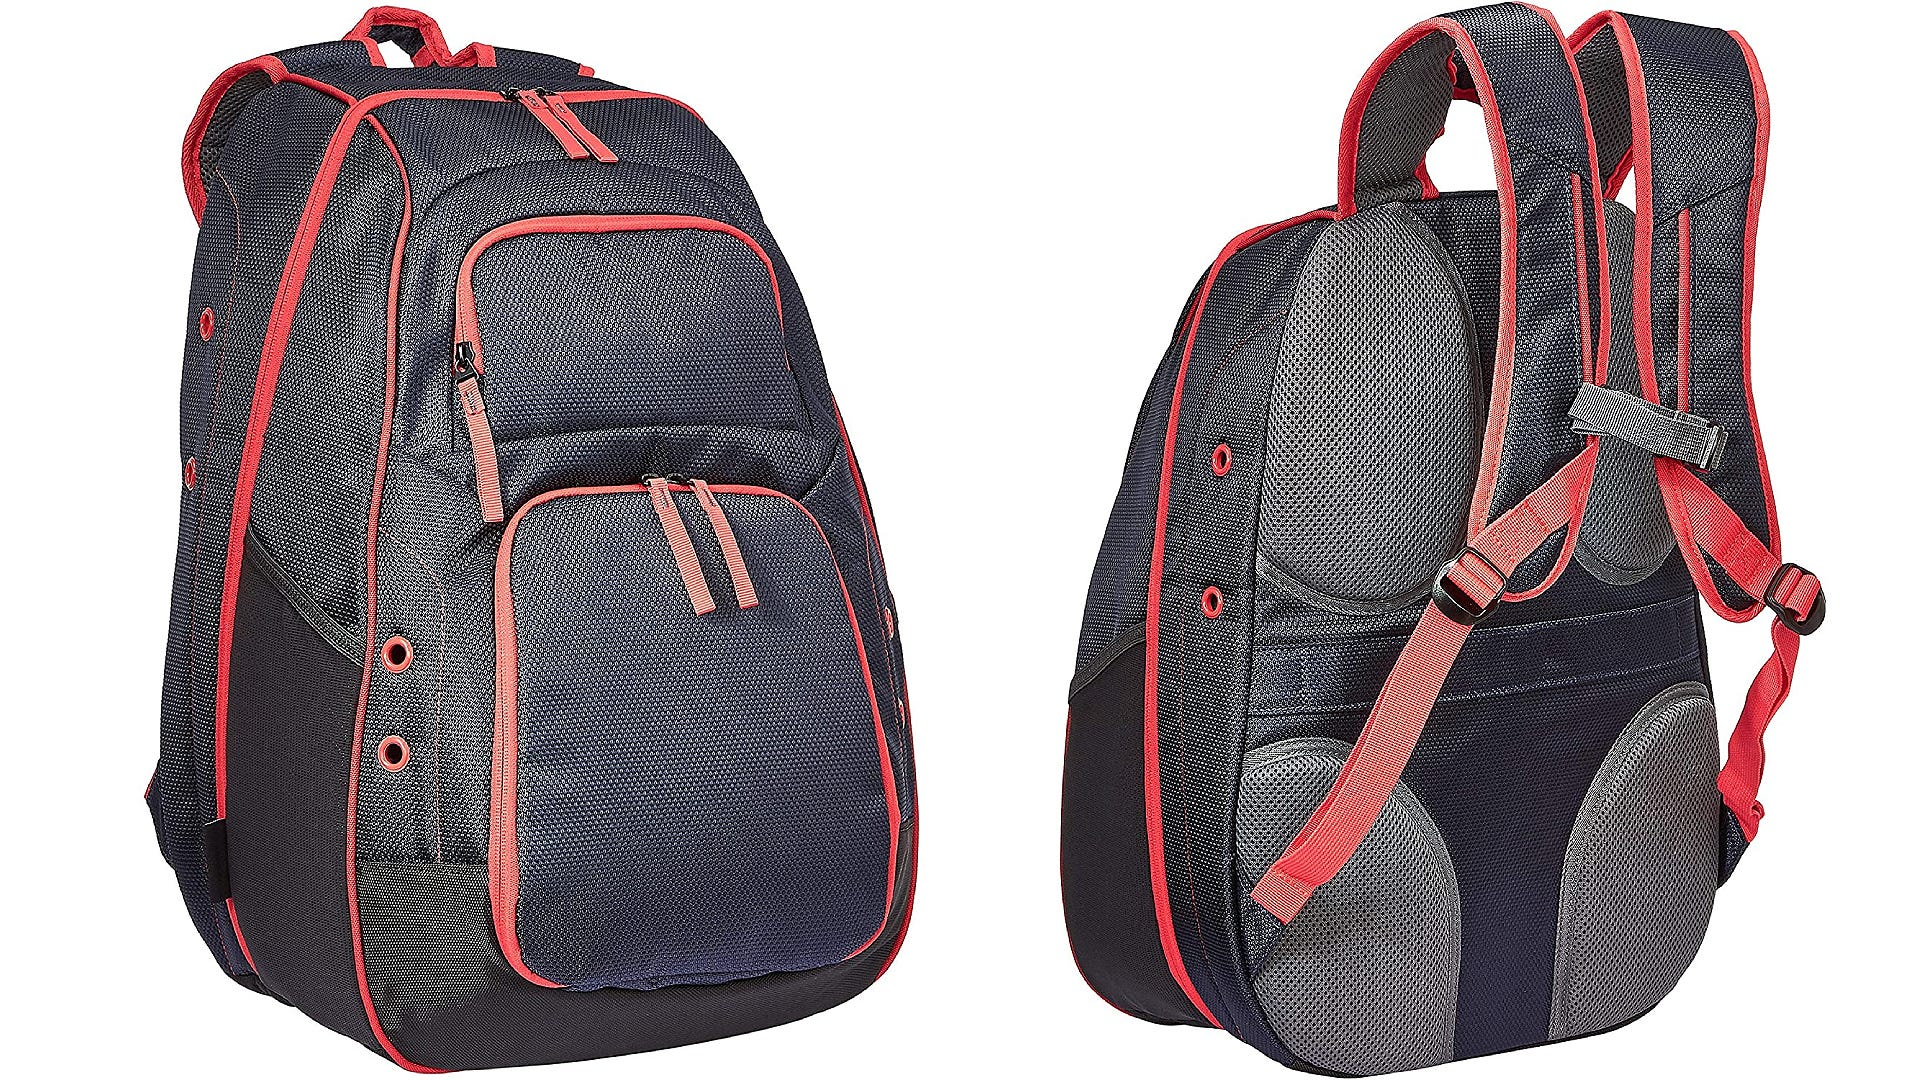 A front and back view black backpack with red accents.